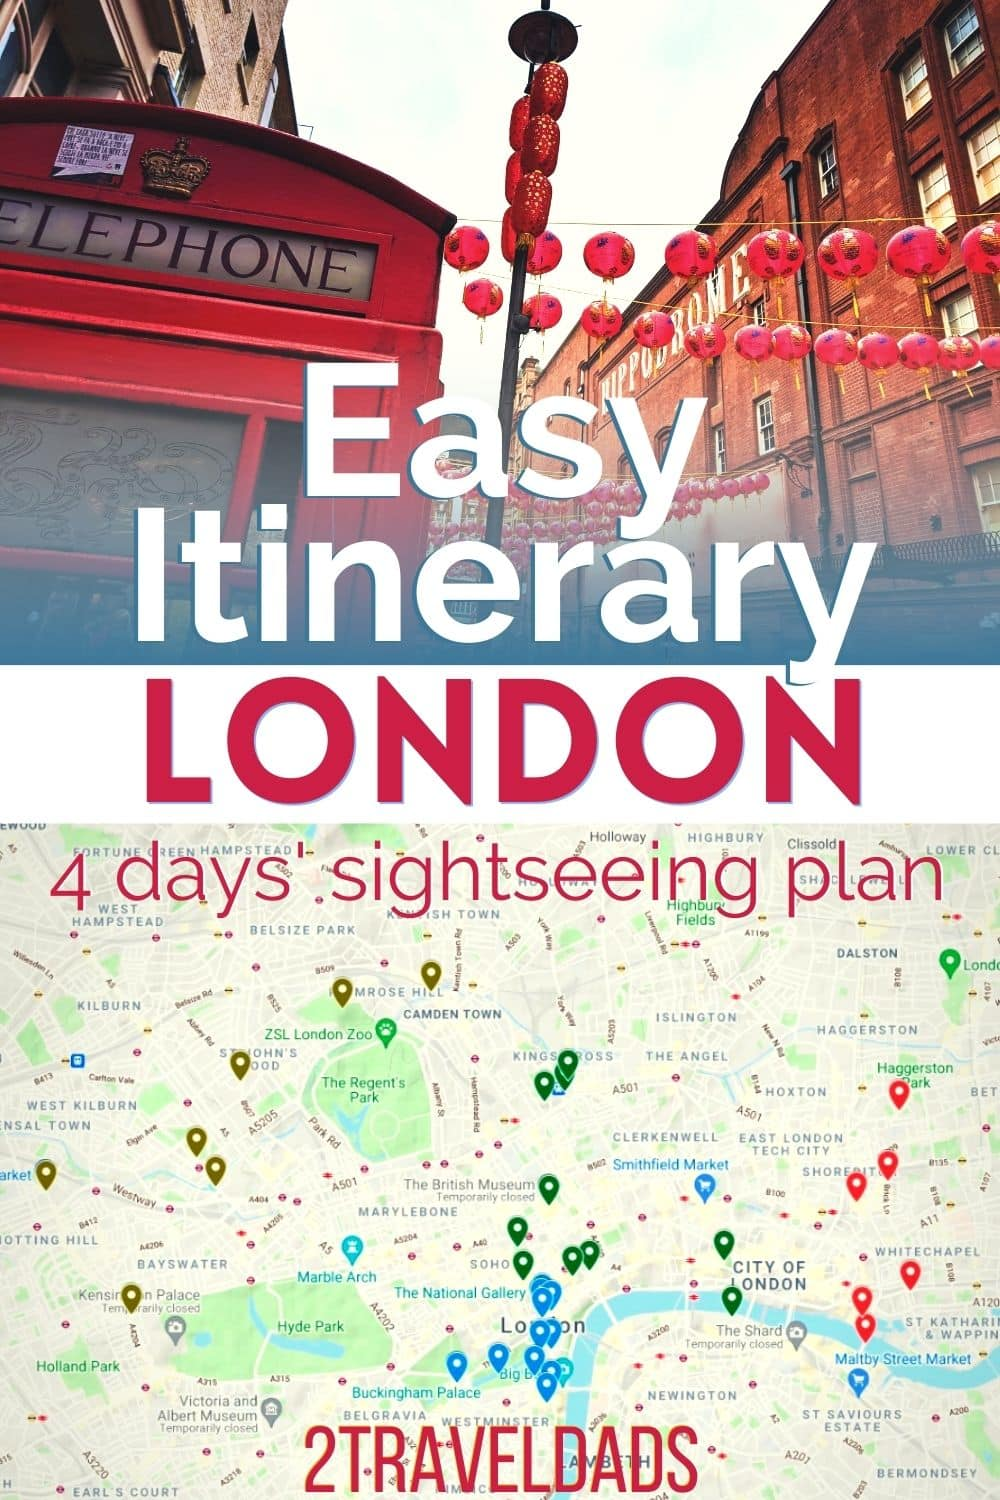 Best things to do in London, both on a budget or via tours. Tips for the best royal sights, historic places and unique art and culture in London. Plan for 4 days, easy London itinerary.